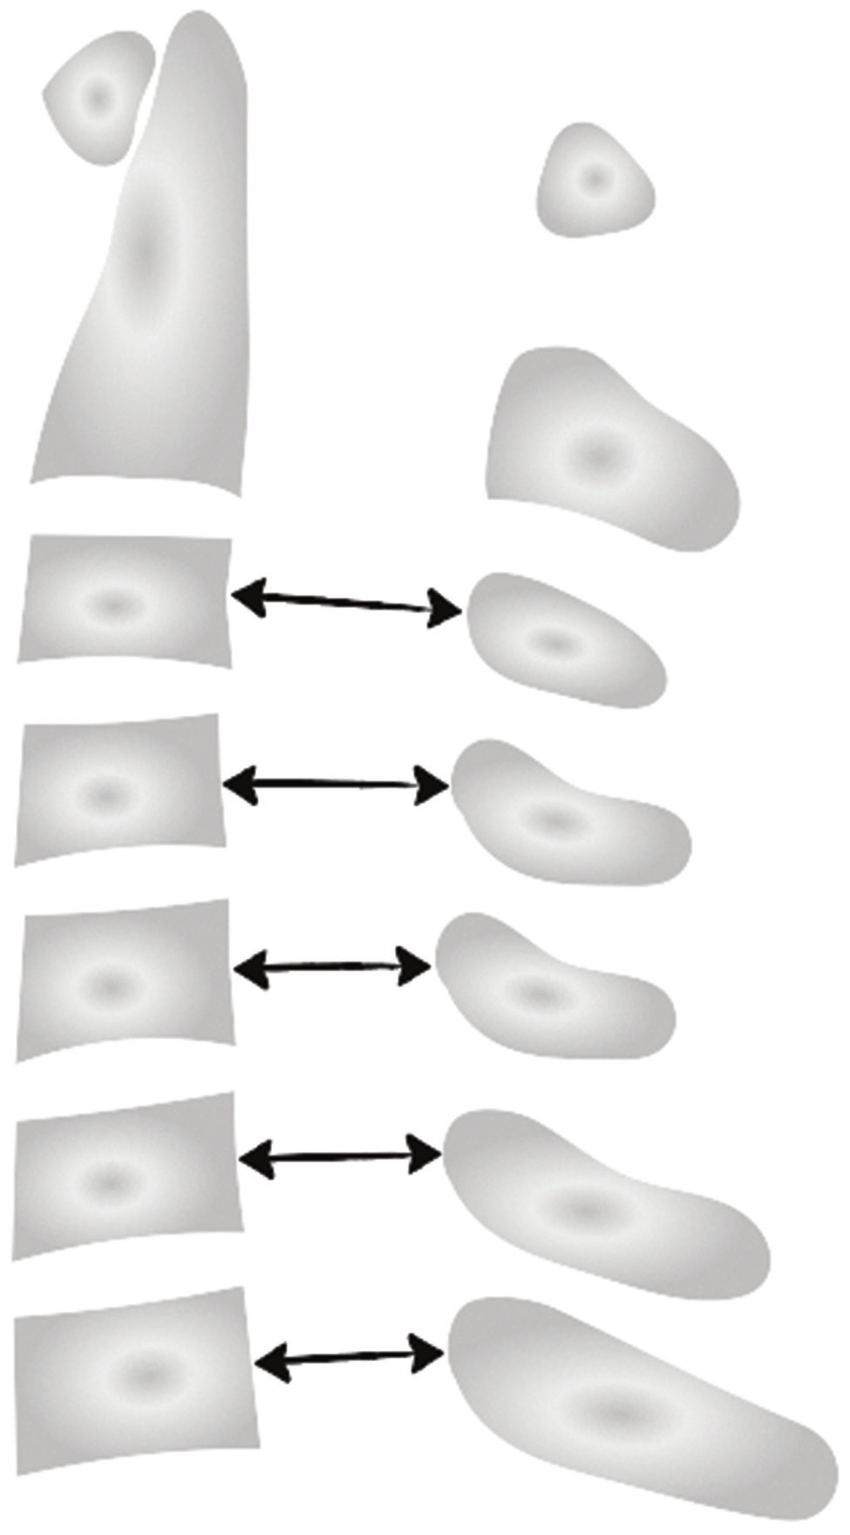 hight resolution of measurement of the spinal canal diameter at the cervical spinal column